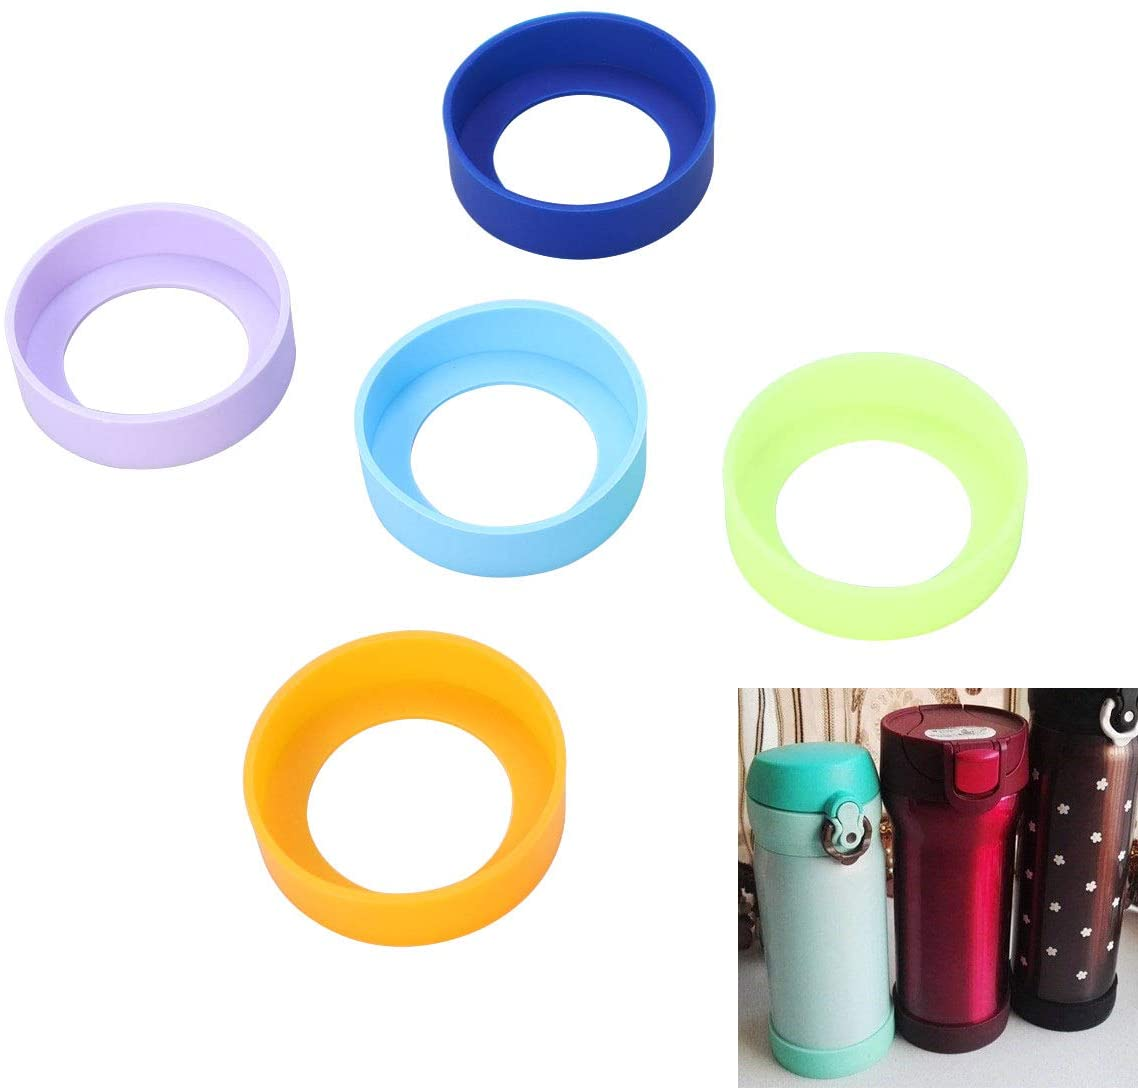 Candy Color Silicone Water Bottle Cup Insulation Protector Cover Sleeve Case B